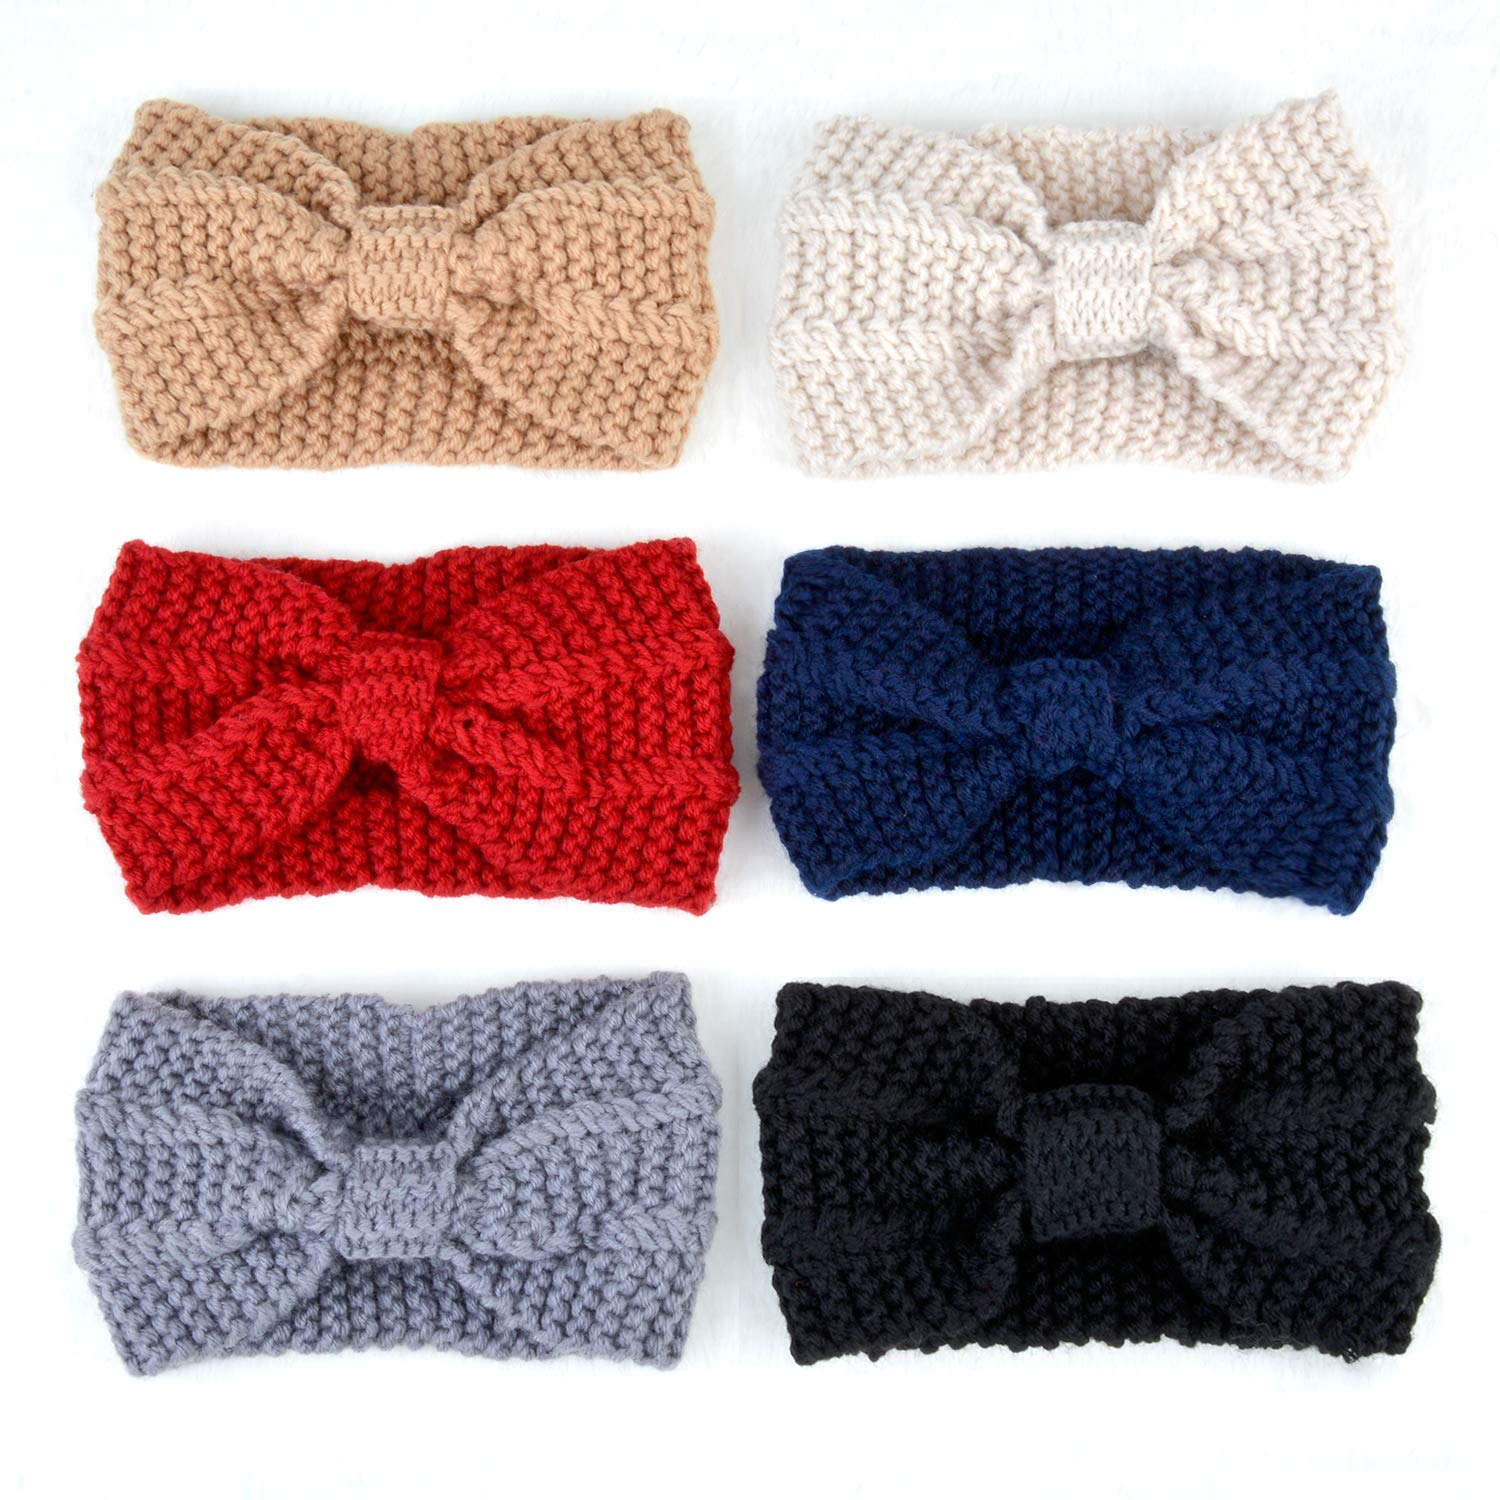 Fascigirl 6 PCS Women\'s Knit Headband Ear Warmers Winter Wide Bow Hair Bands Turban Hair Accessories